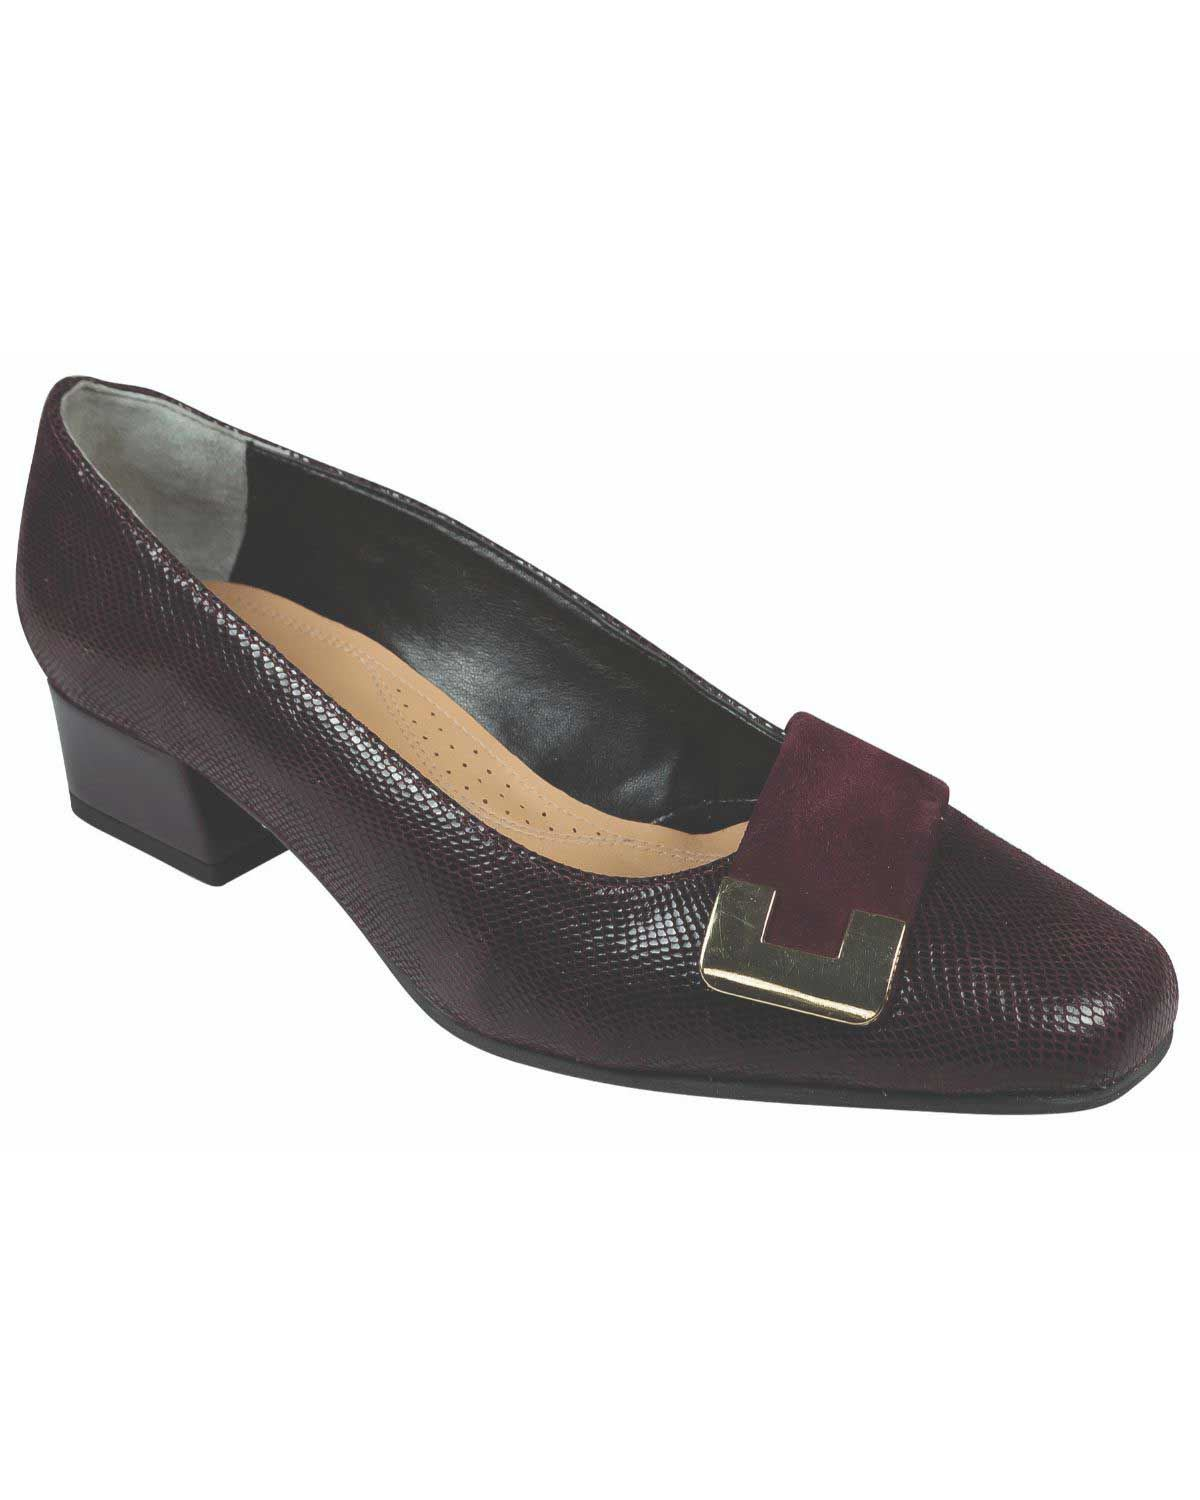 Van Dal Leather Duchess Shoe in Garnet